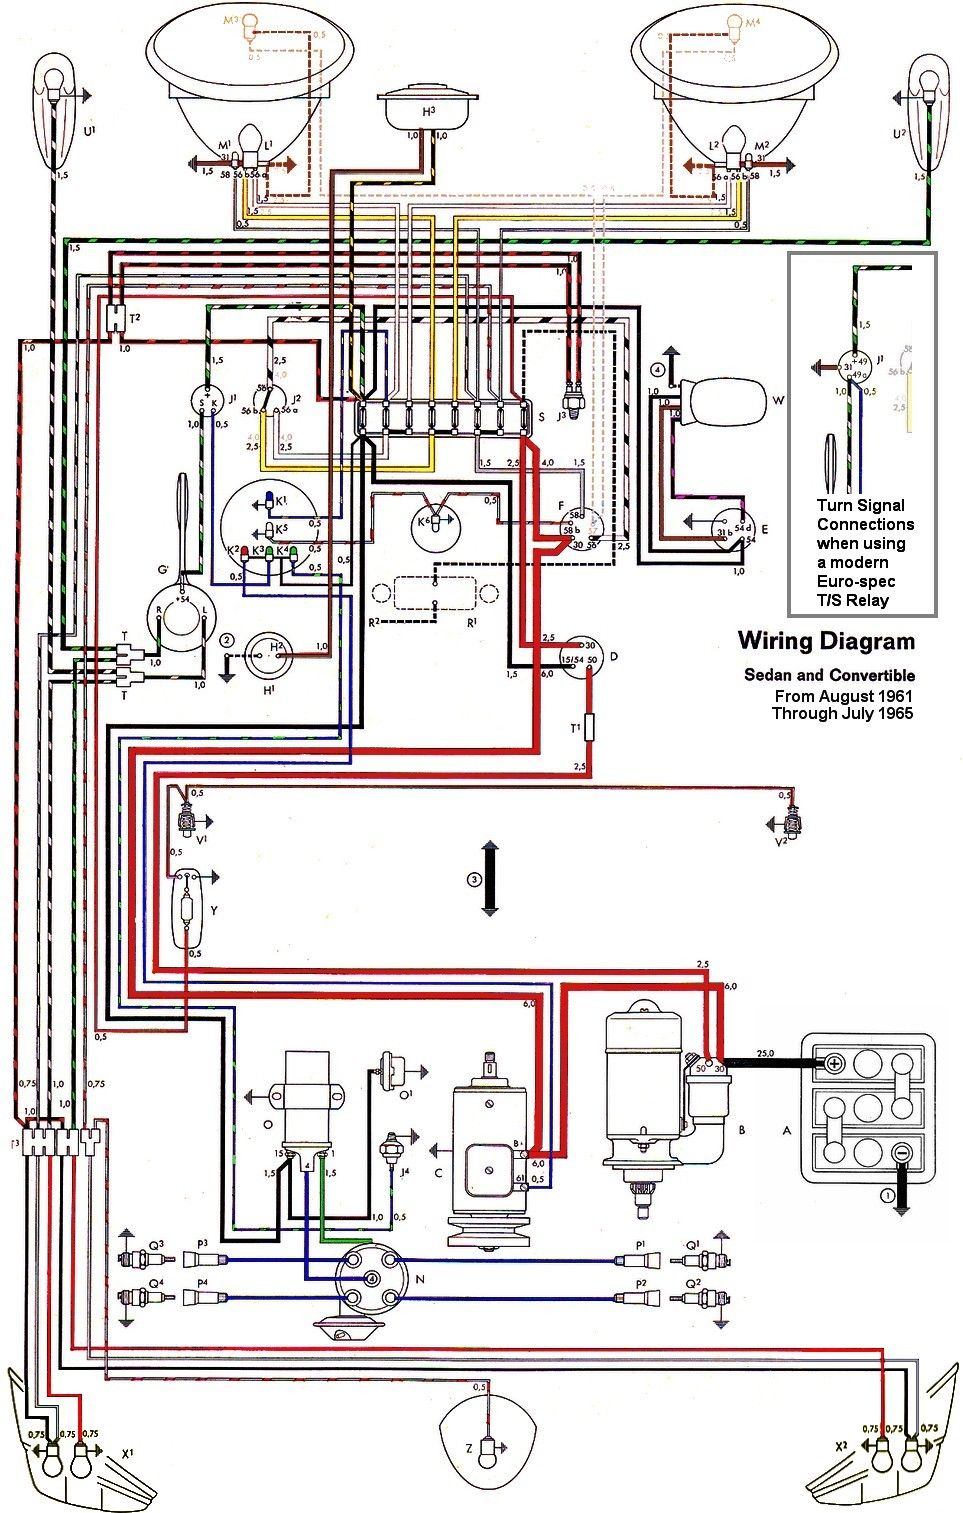 wiring diagram vw beetle sedan and convertible 1961 1965 vw in rh pinterest com vw wiring diagram alternator vw wiring diagram symbols